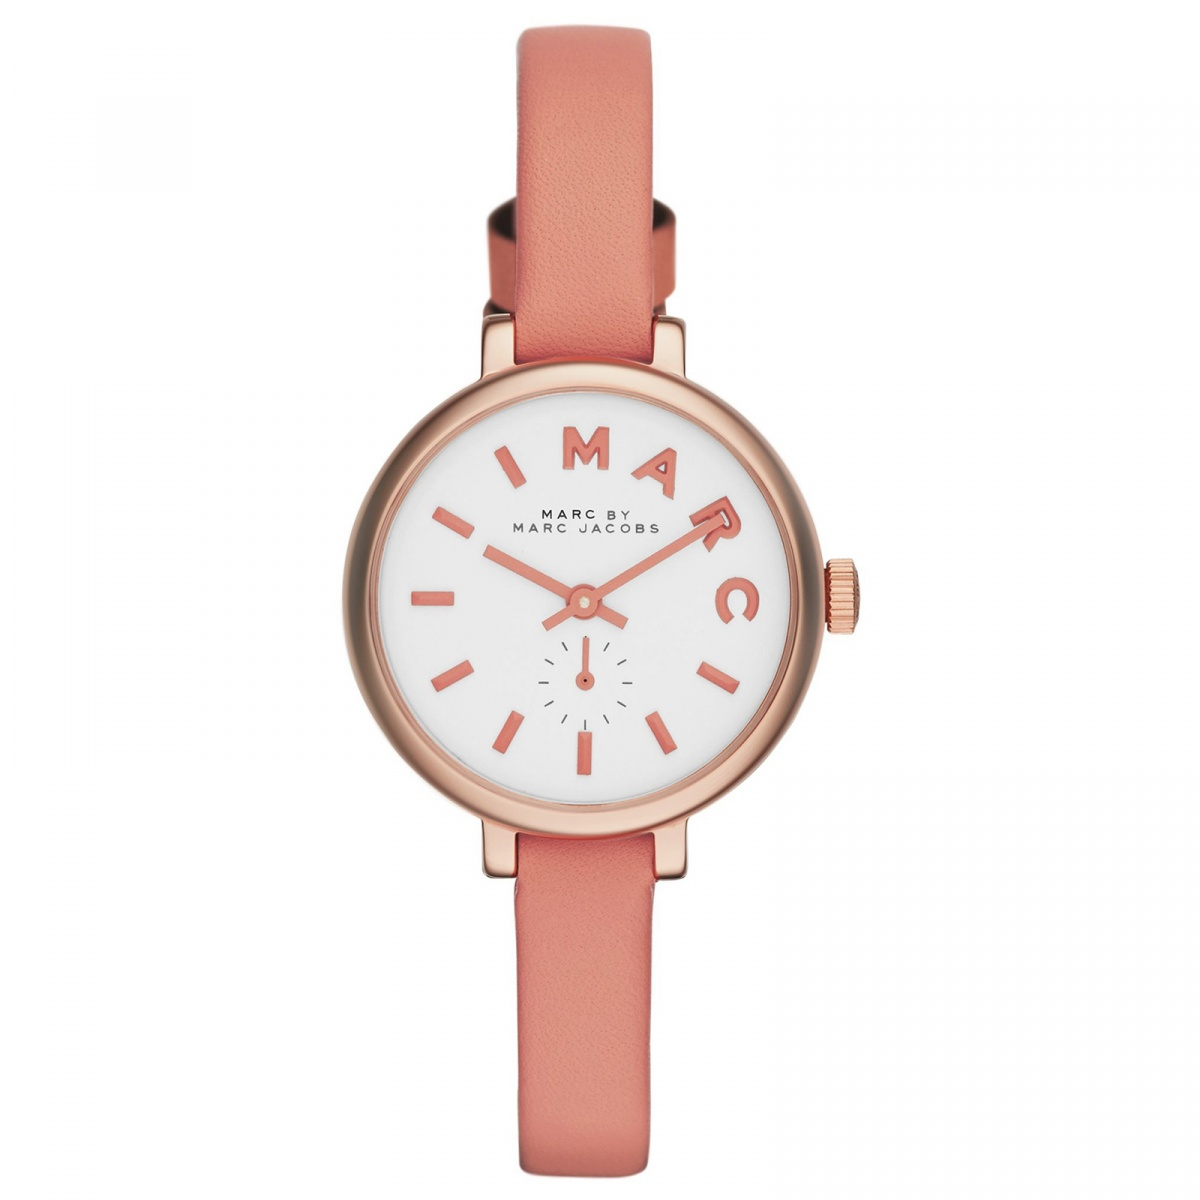 Marc by Marc Jacobs Uhr MBM1355 Sally Damen Leder Gold Rosa Weiß ...